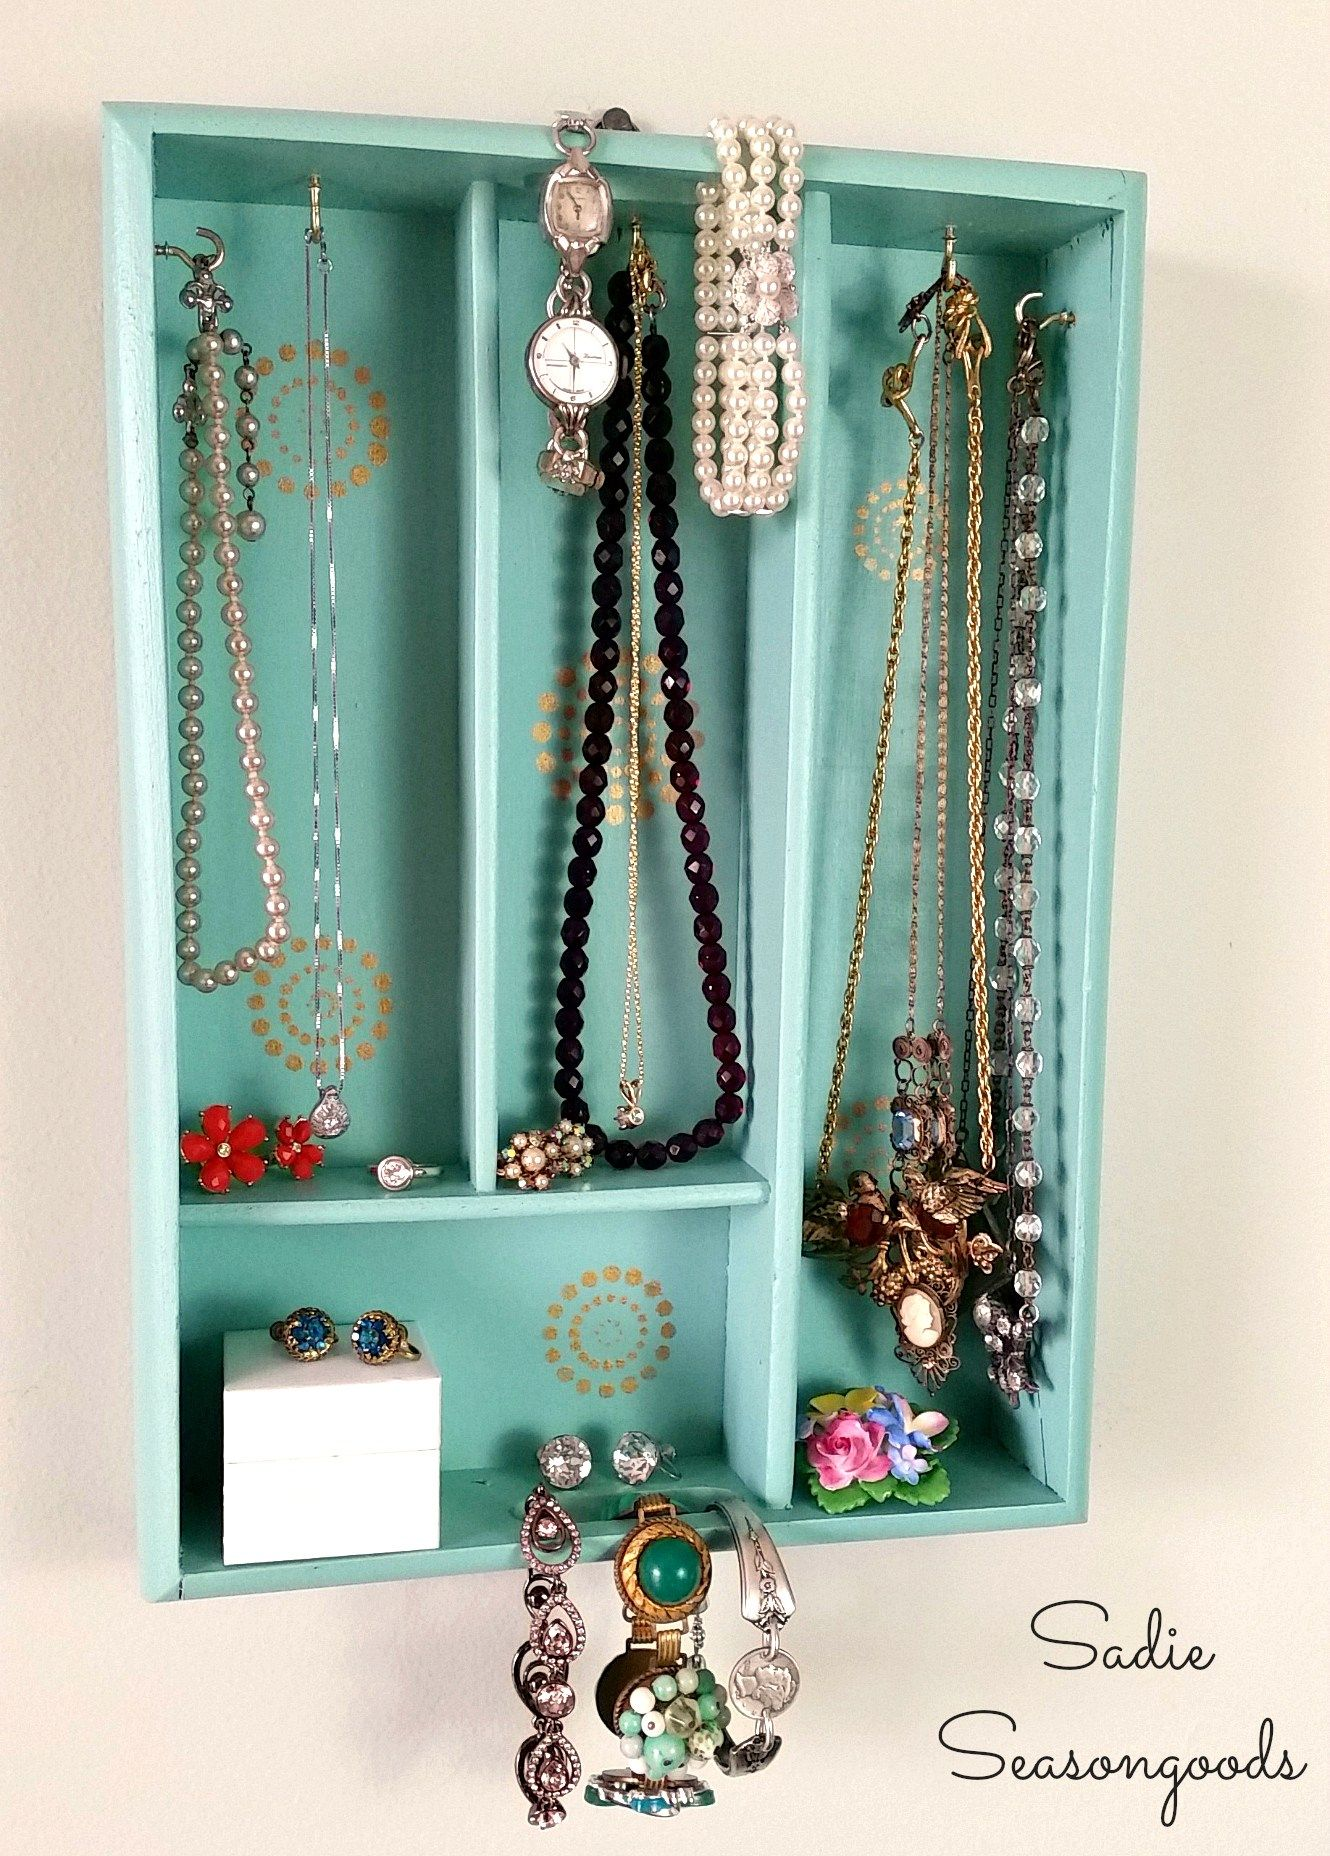 Easy inexpensive do it yourself ways to organize and decorate your diy bathroom organizer ideas upcycle a silverware tray into a pretty hanging jewelry organizer solutioingenieria Images